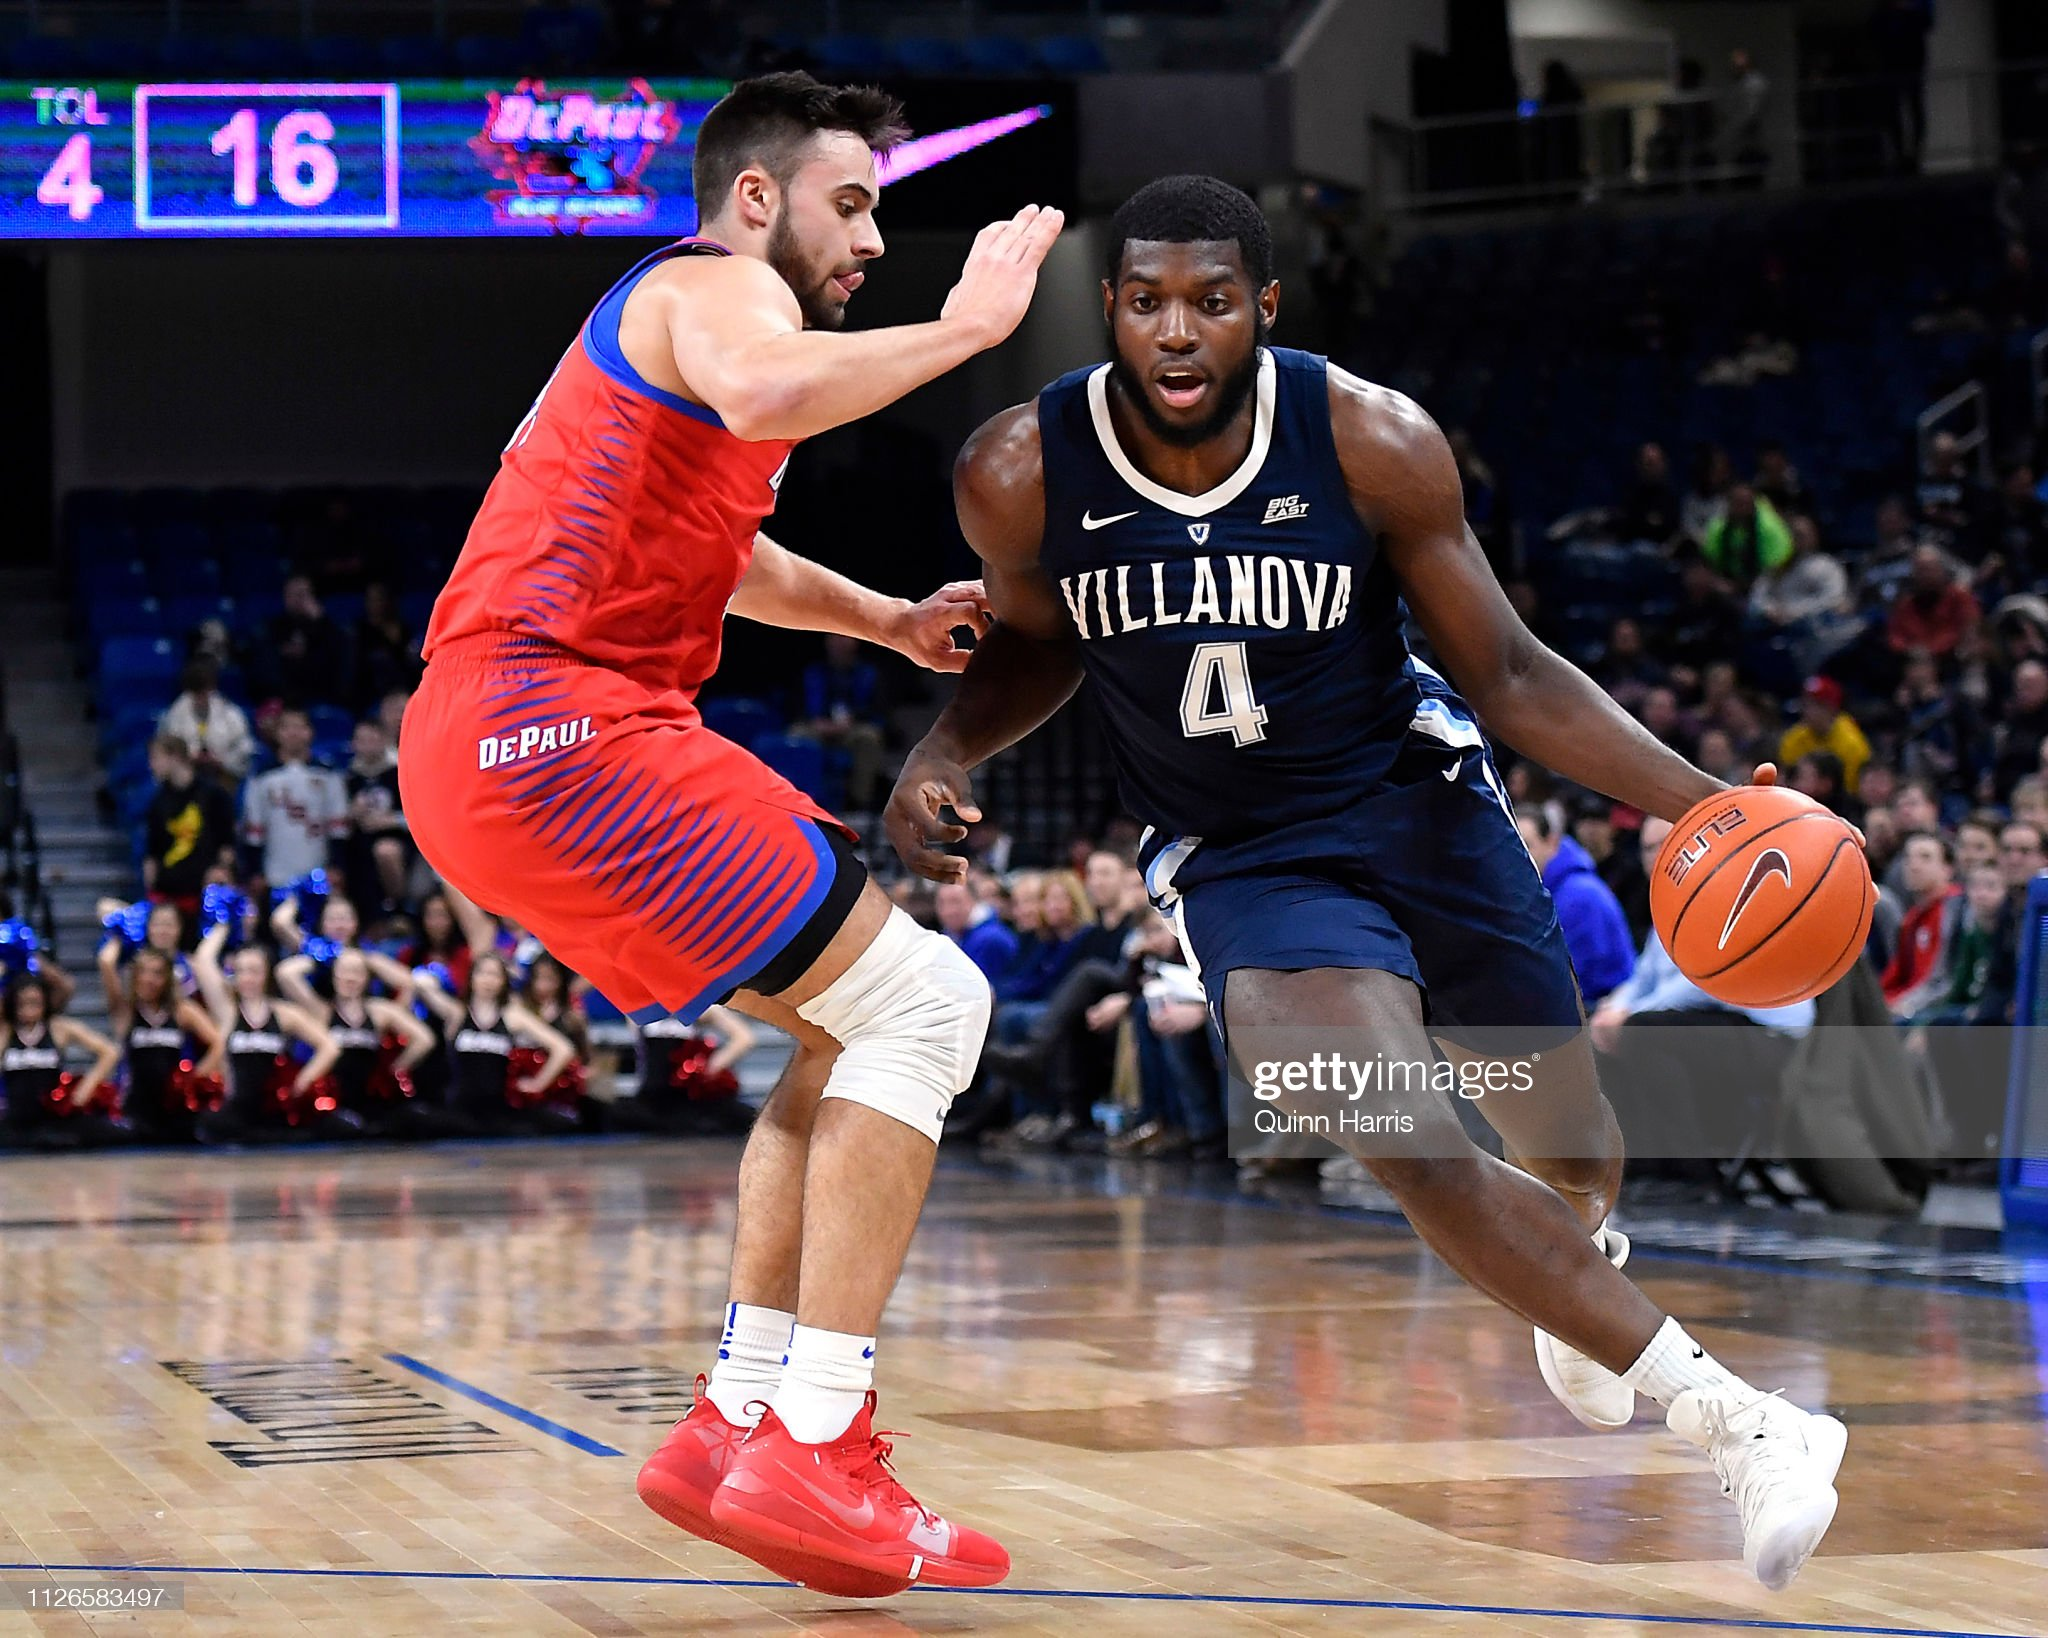 eric-paschall-of-the-villanova-wildcats-